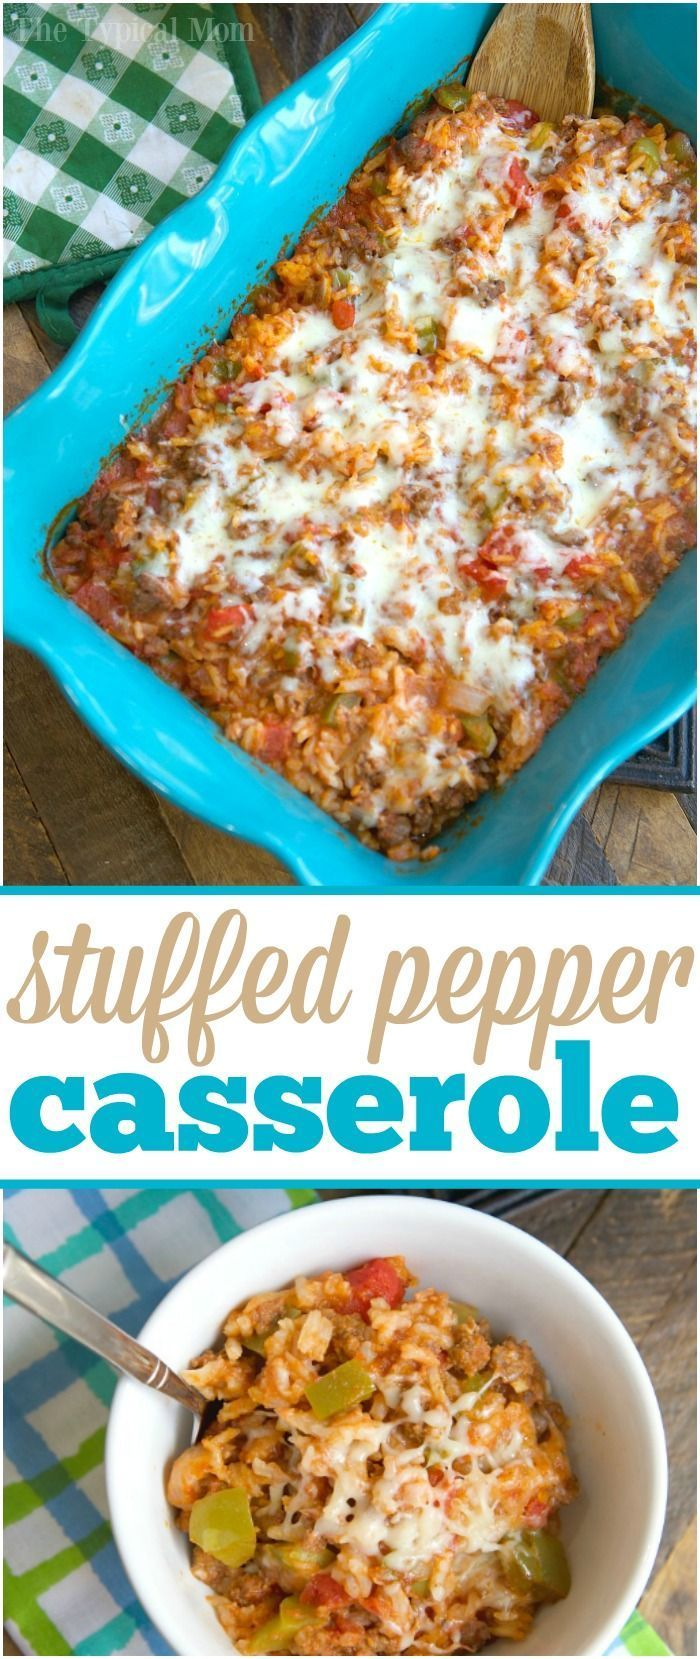 This cheesy stuffed pepper casserole is so good! Like deconstructed stuffed bell peppers it's easy to throw together and even my kids love it! via @thetypicalmom #bellpepperrecipes